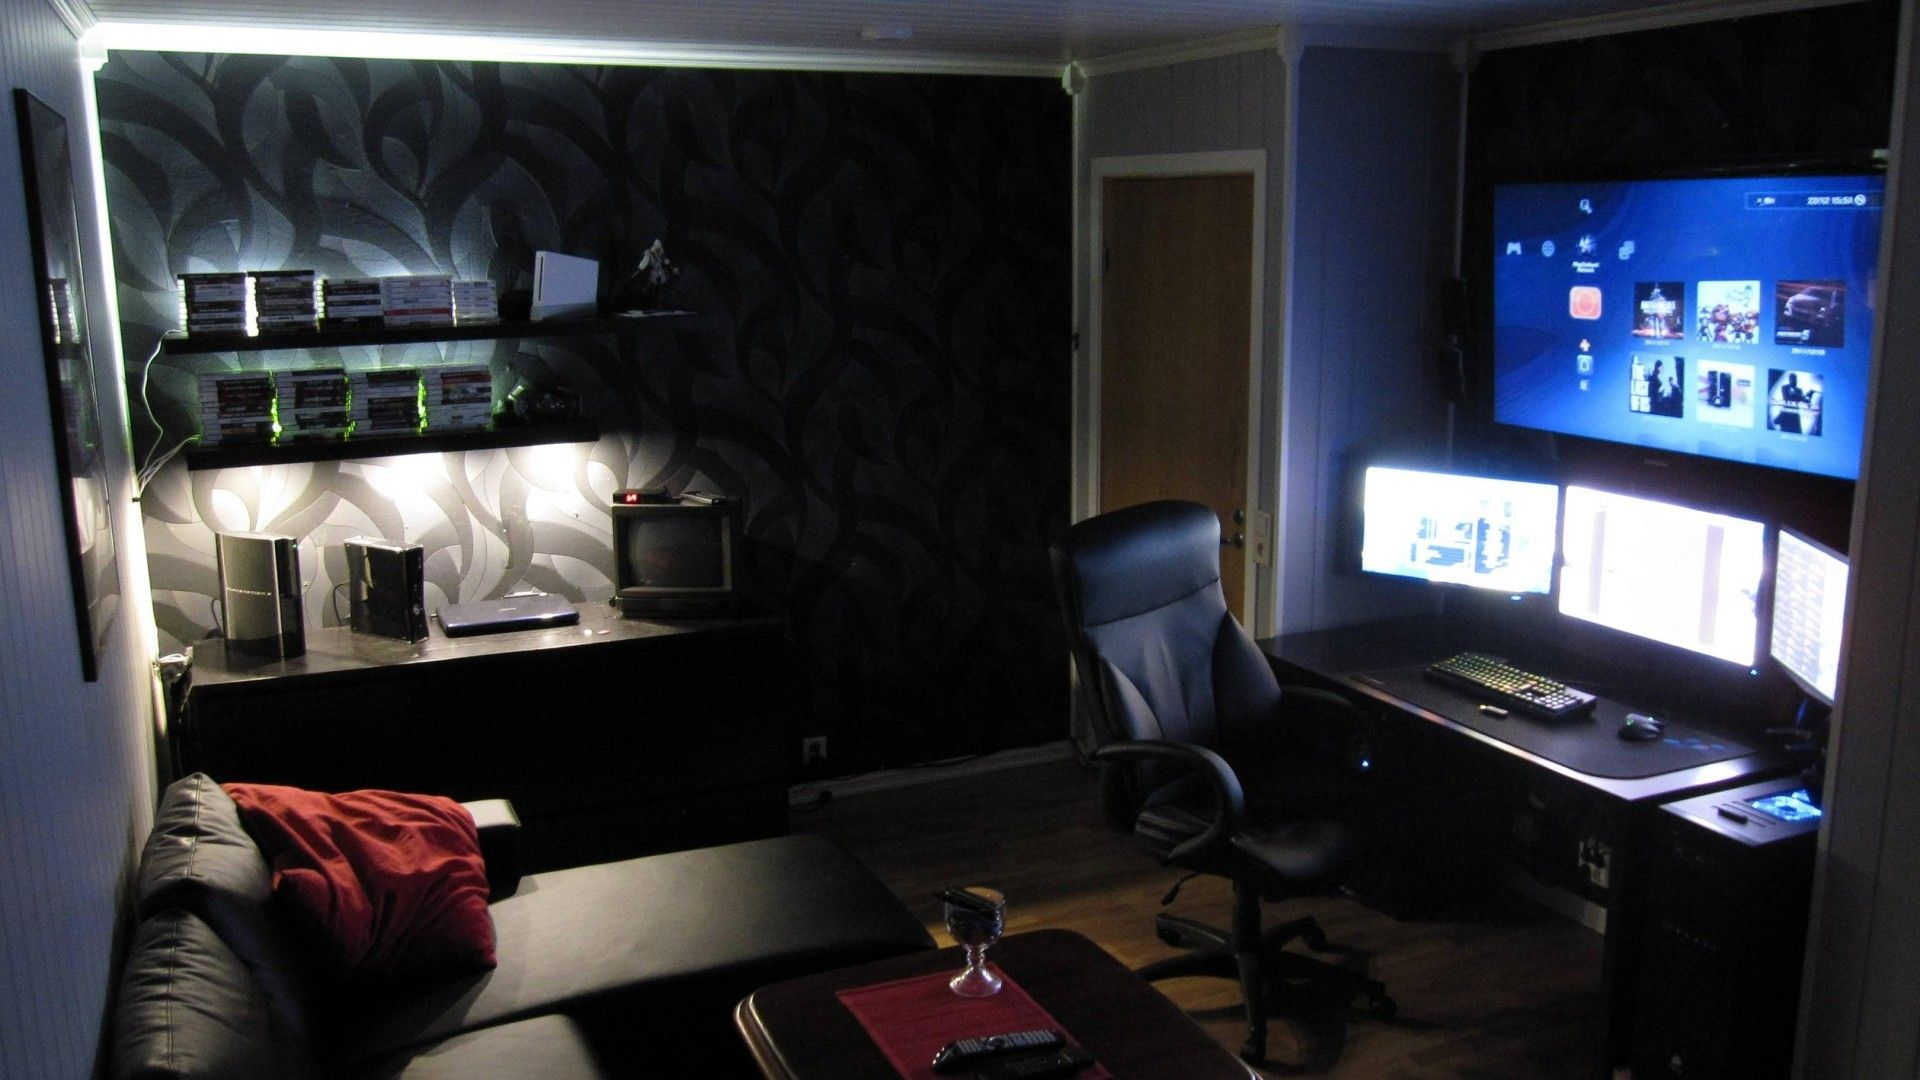 TV Interior Dreams Chairs Bedroom Designs Remote Control Gaming Room Screens Computer Mancave 1920x1080 Wallpaper